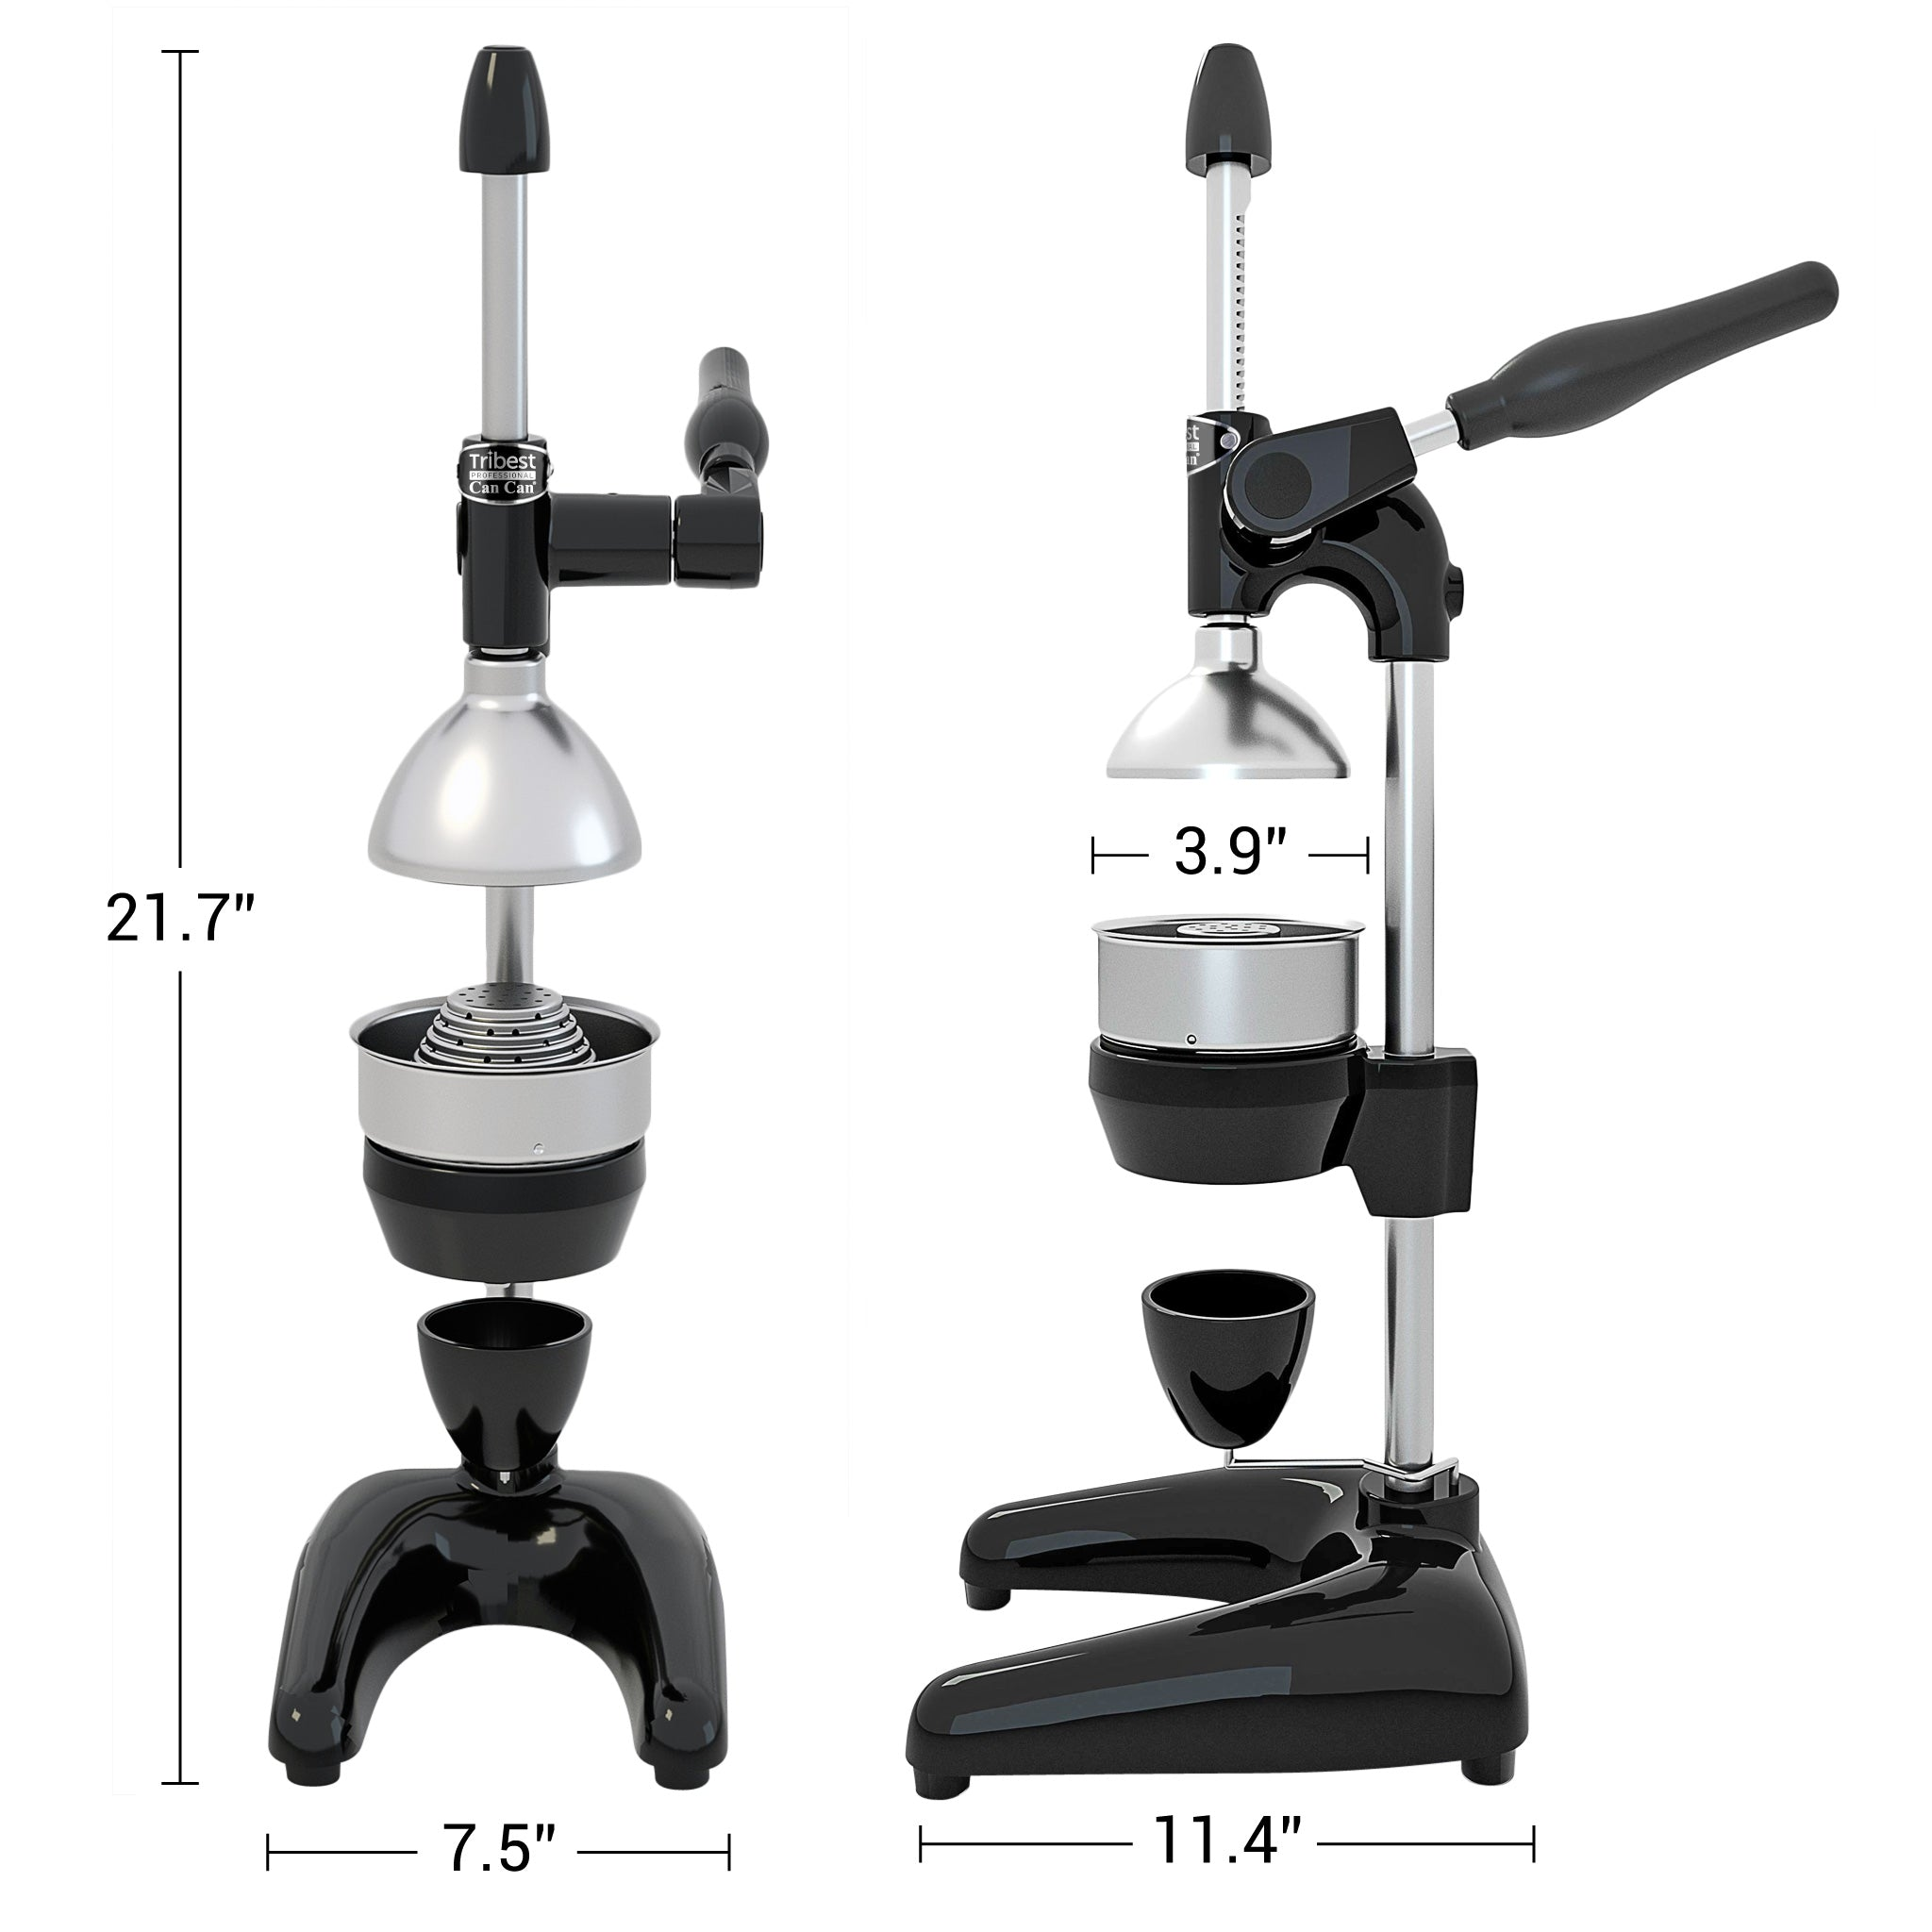 Tribest Professional Cancan Manual Juice Press MJP-100 in Black 21.7